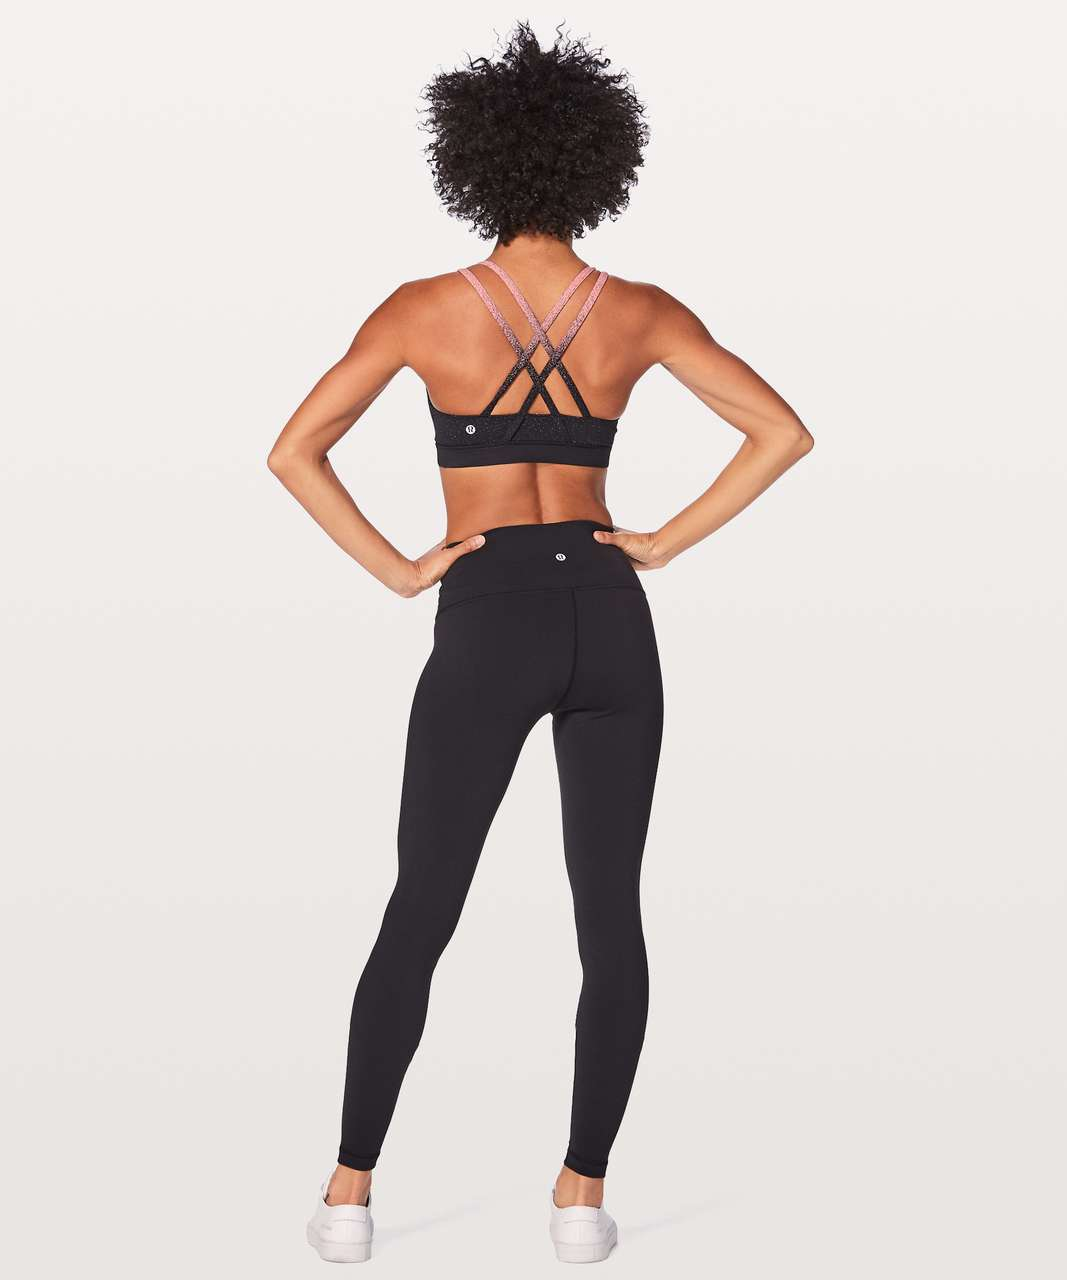 Lululemon Energy Bra Ombre Speckle - Ombre Speckle Stop Jacquard Interlock Power Luxtreme Black Yum Yum Pink